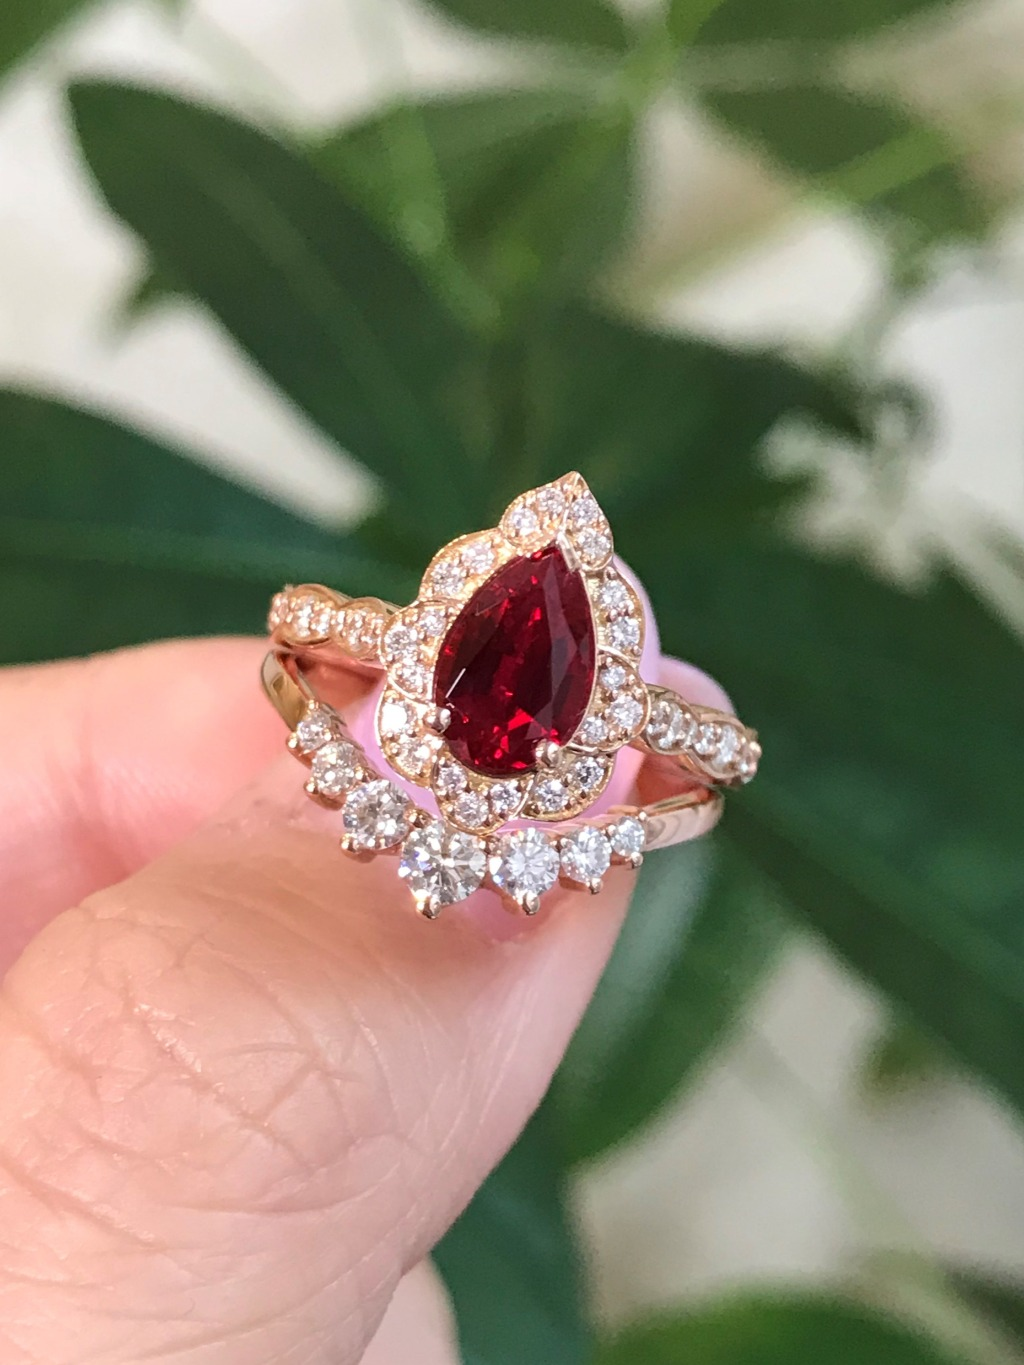 Is your favorite gemstone ruby? Here is our vintage floral pear cut ruby in scalloped diamond band paired with our 7- stone diamond